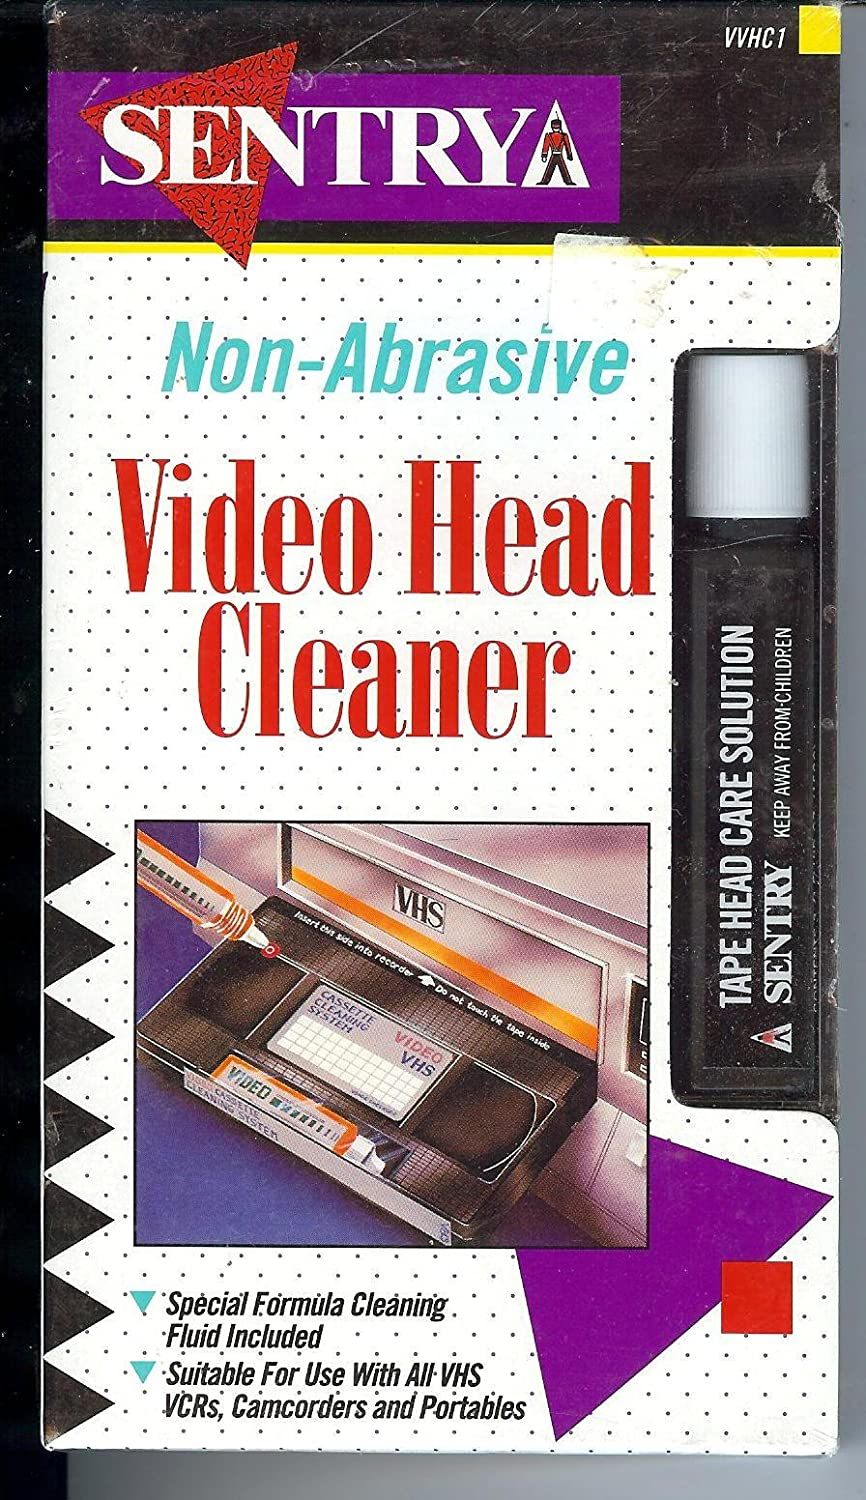 Sentry Non-Abrasive Video Head Cleaner FH 4KT1010010